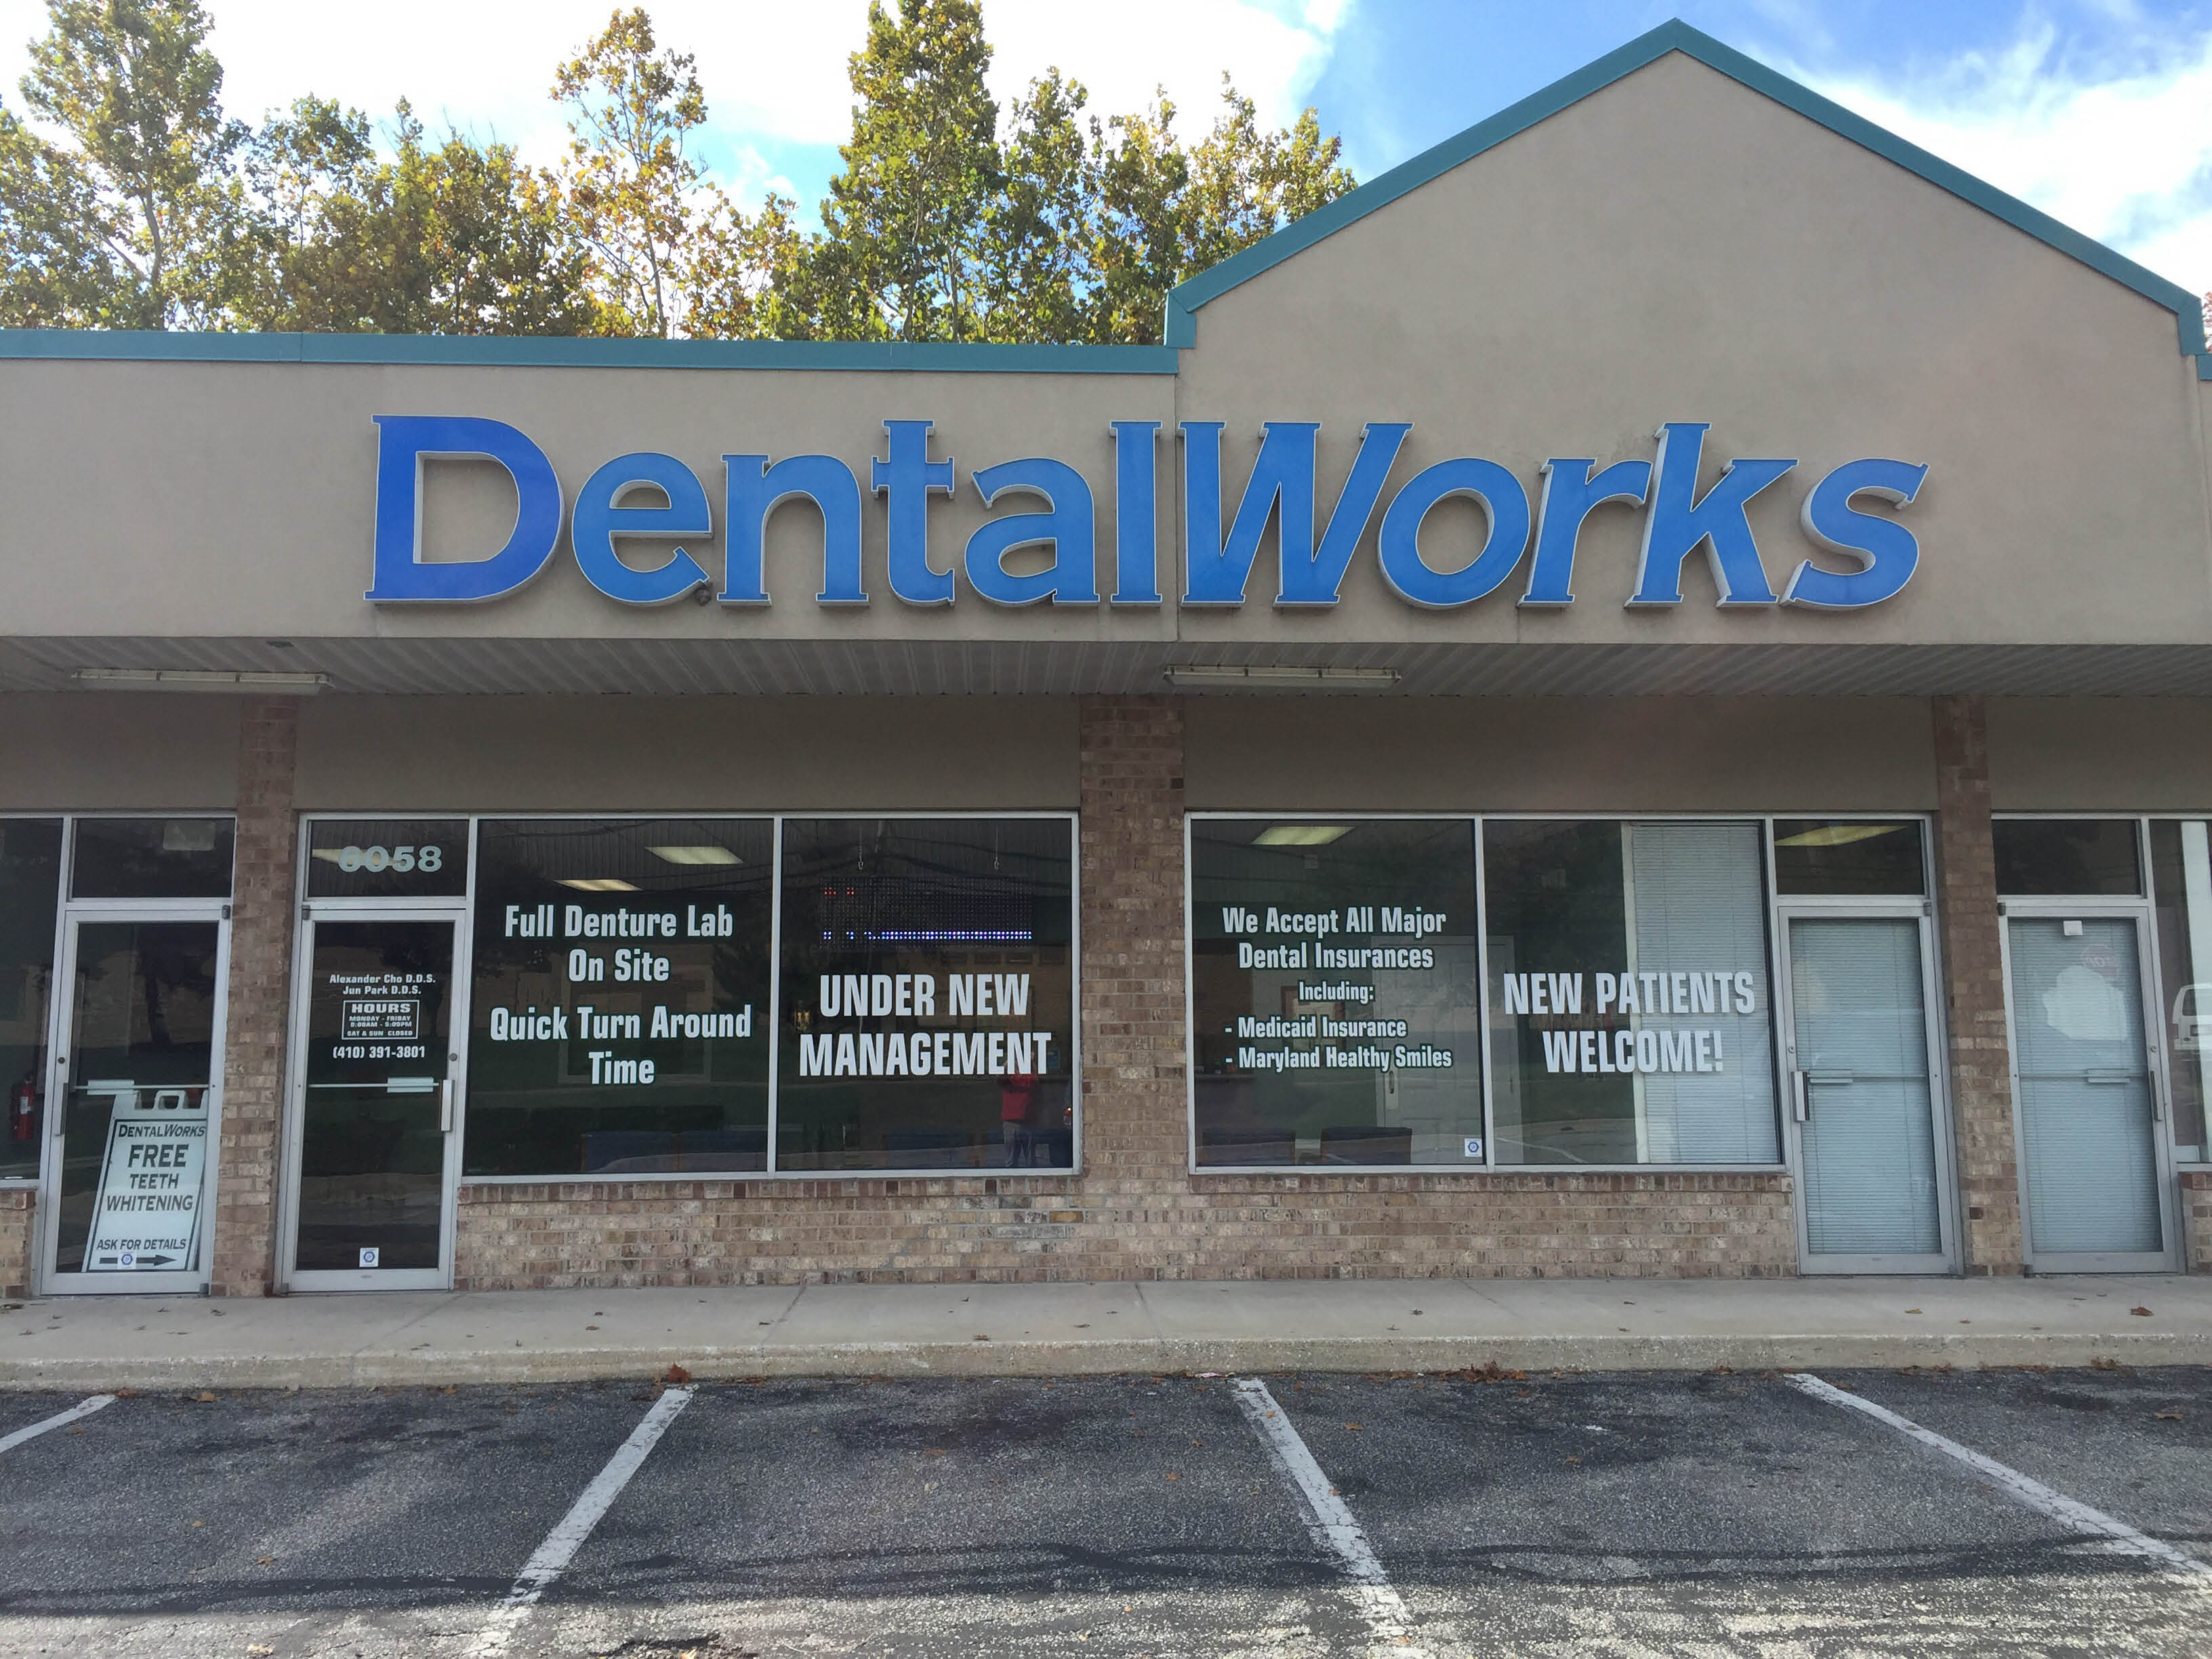 dental works in baltimore md general, cosmetic and implant dentistry.